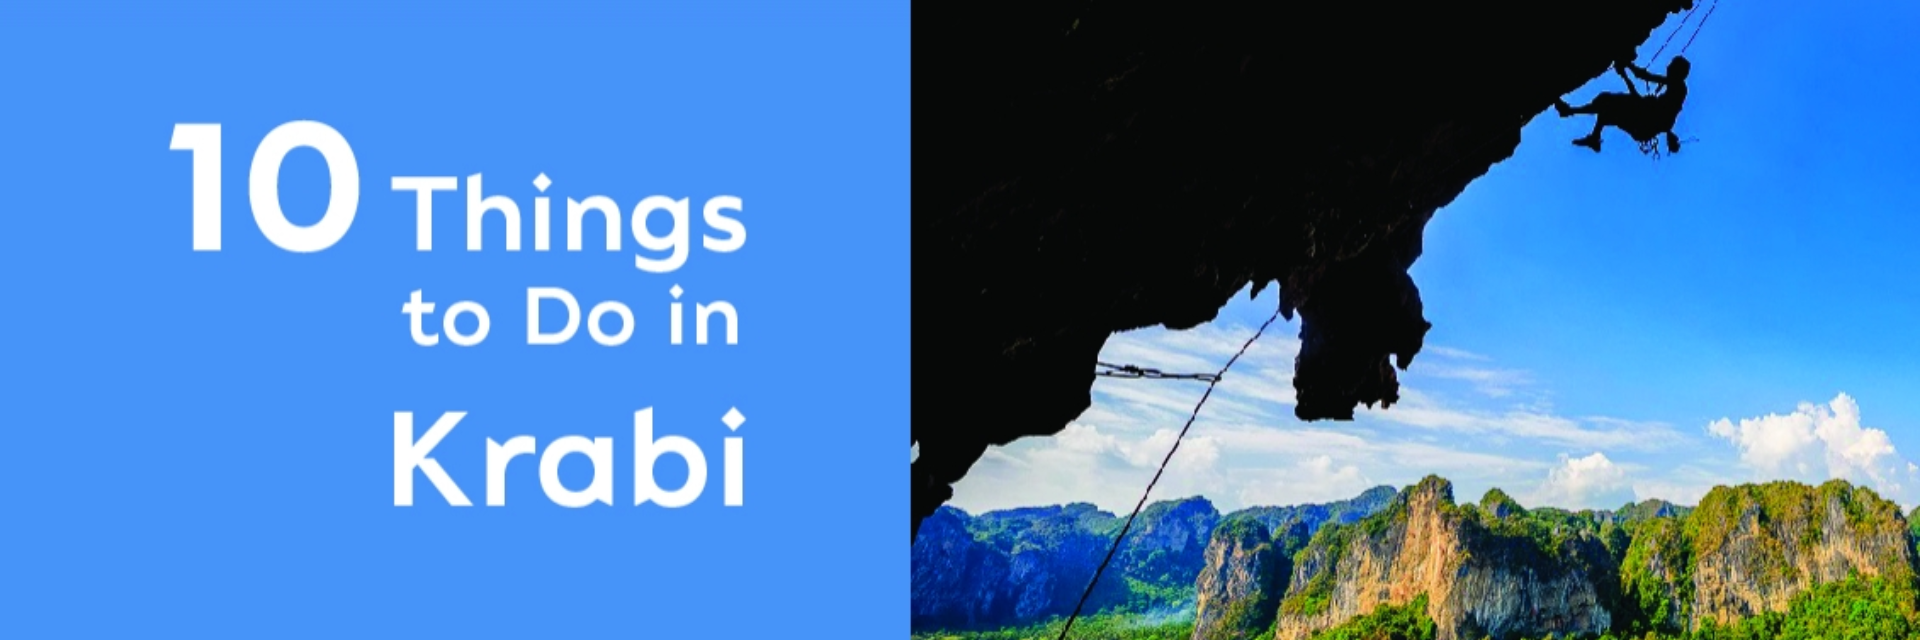 10 THINGS TO DO IN KRABI